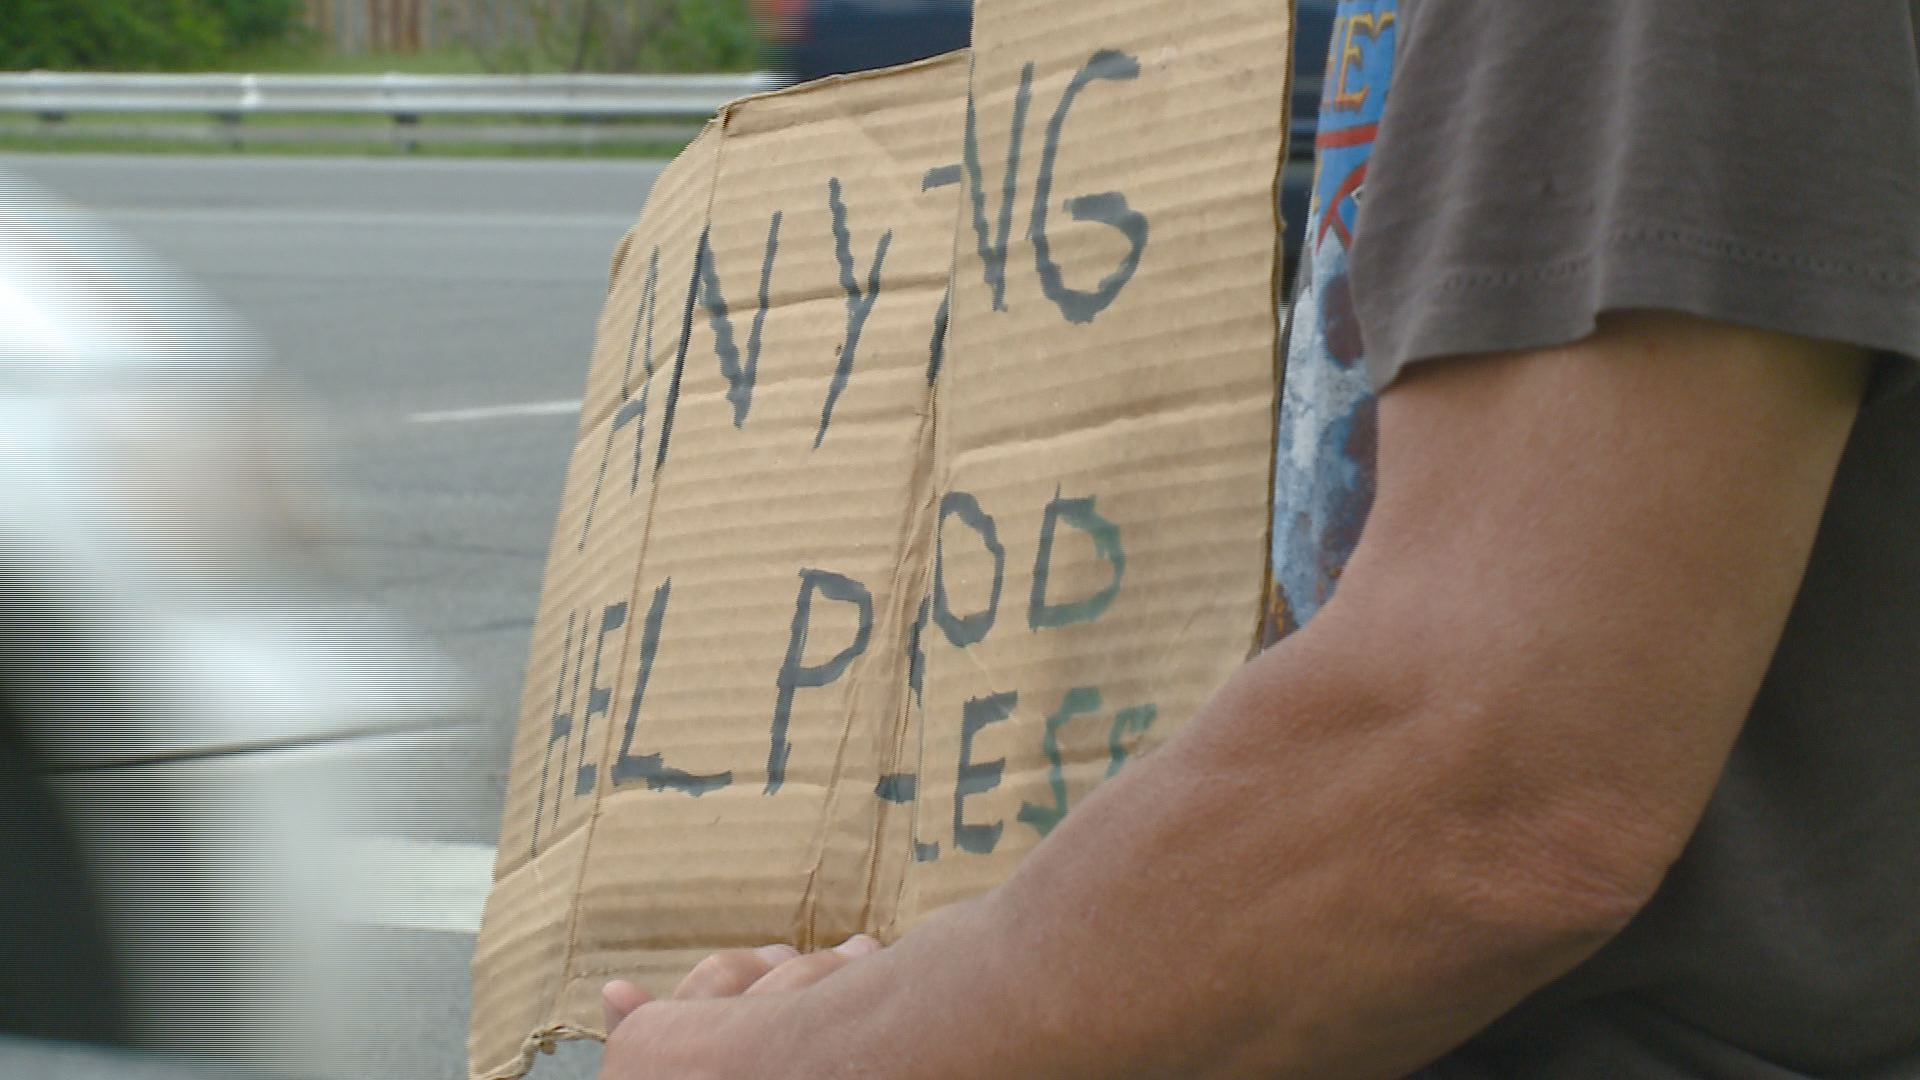 Man sits on side of street with sign asking for money fomr passing cars, a process called panhandling.